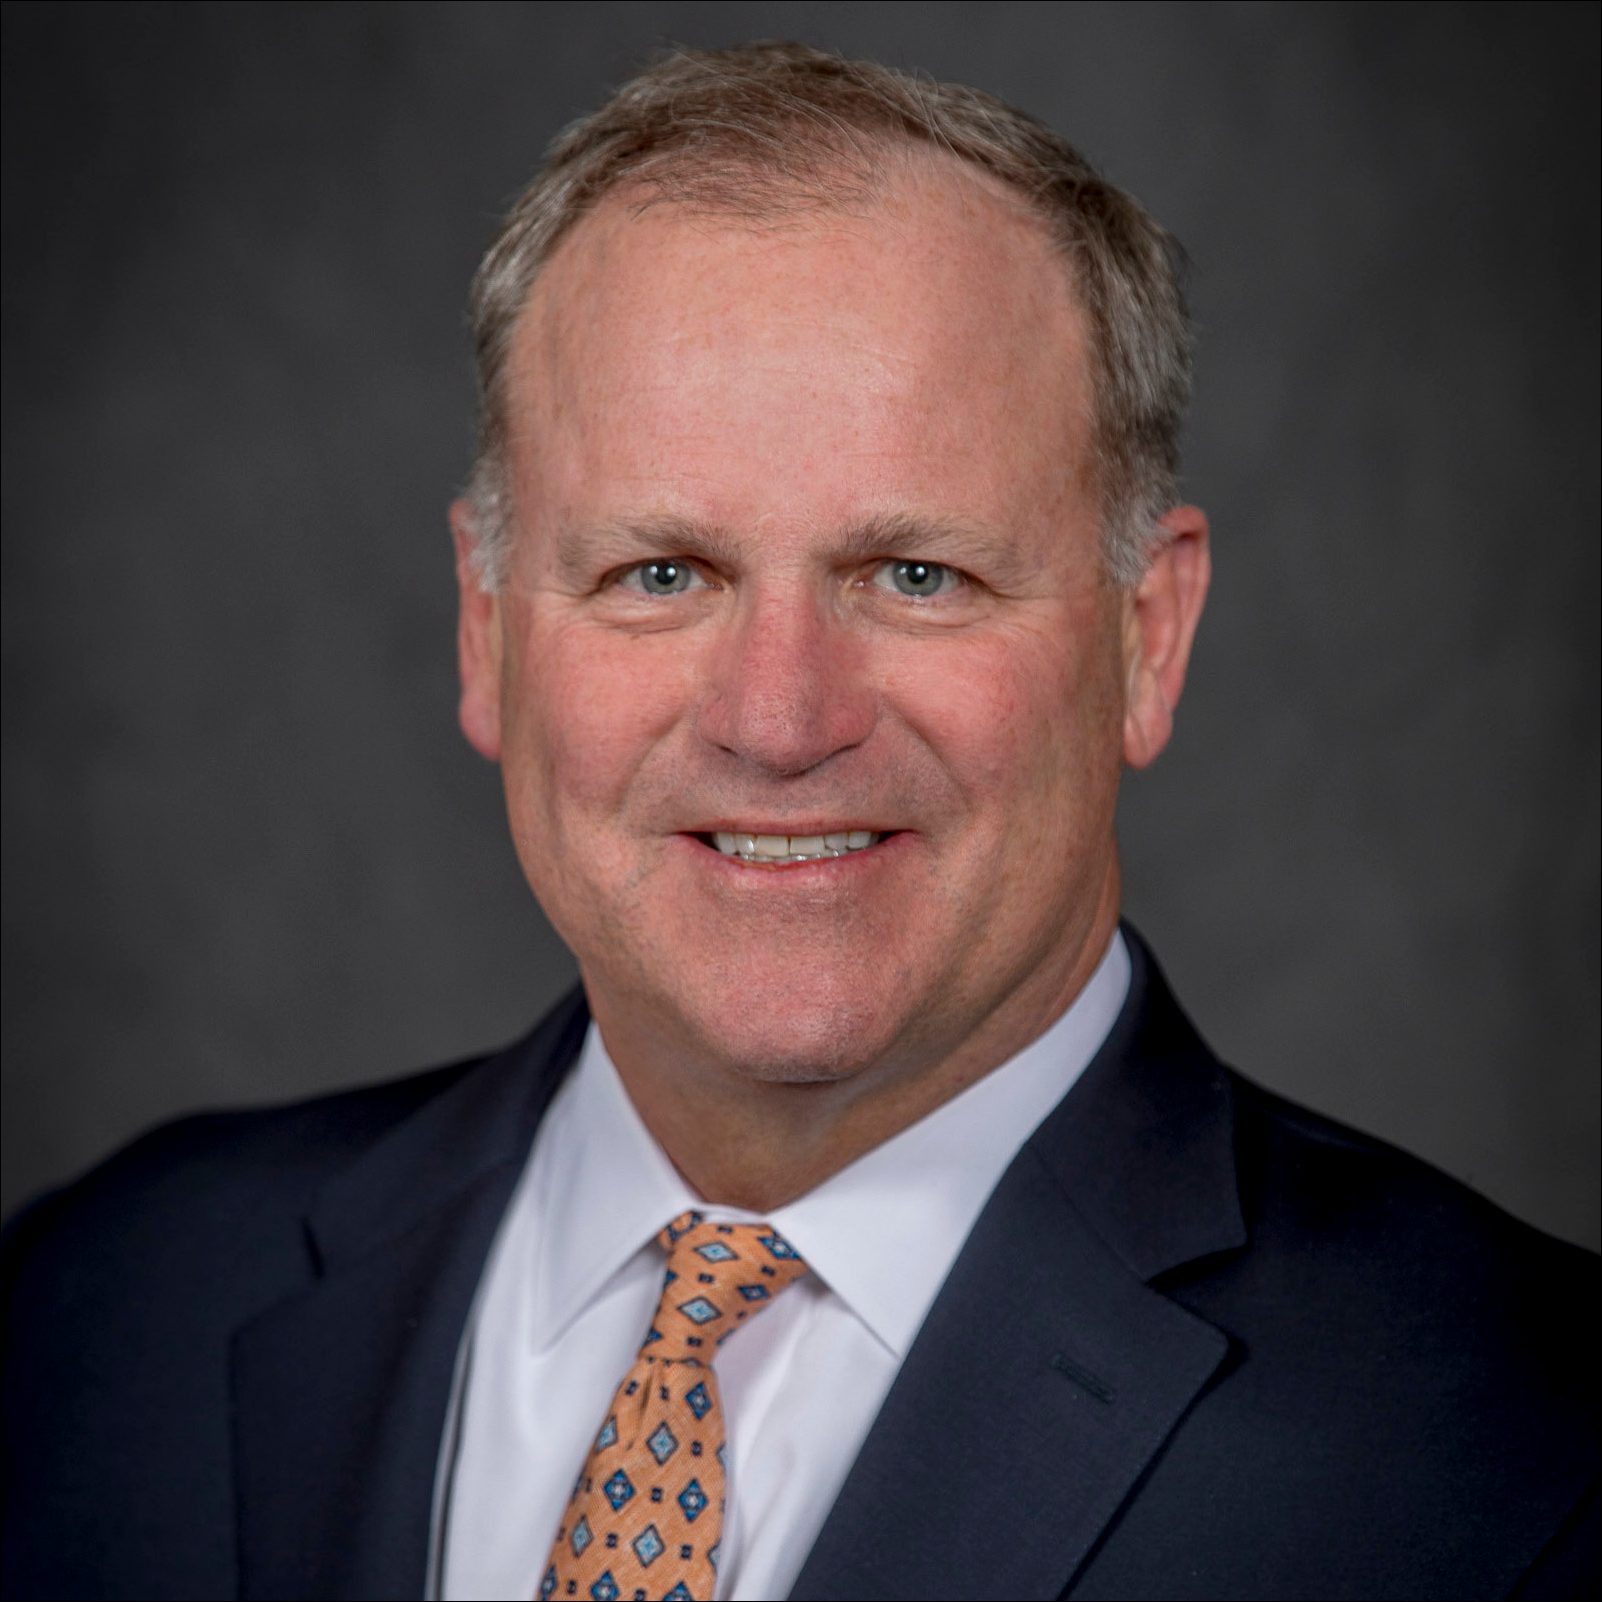 Henry Stoever, AGB President and CEO